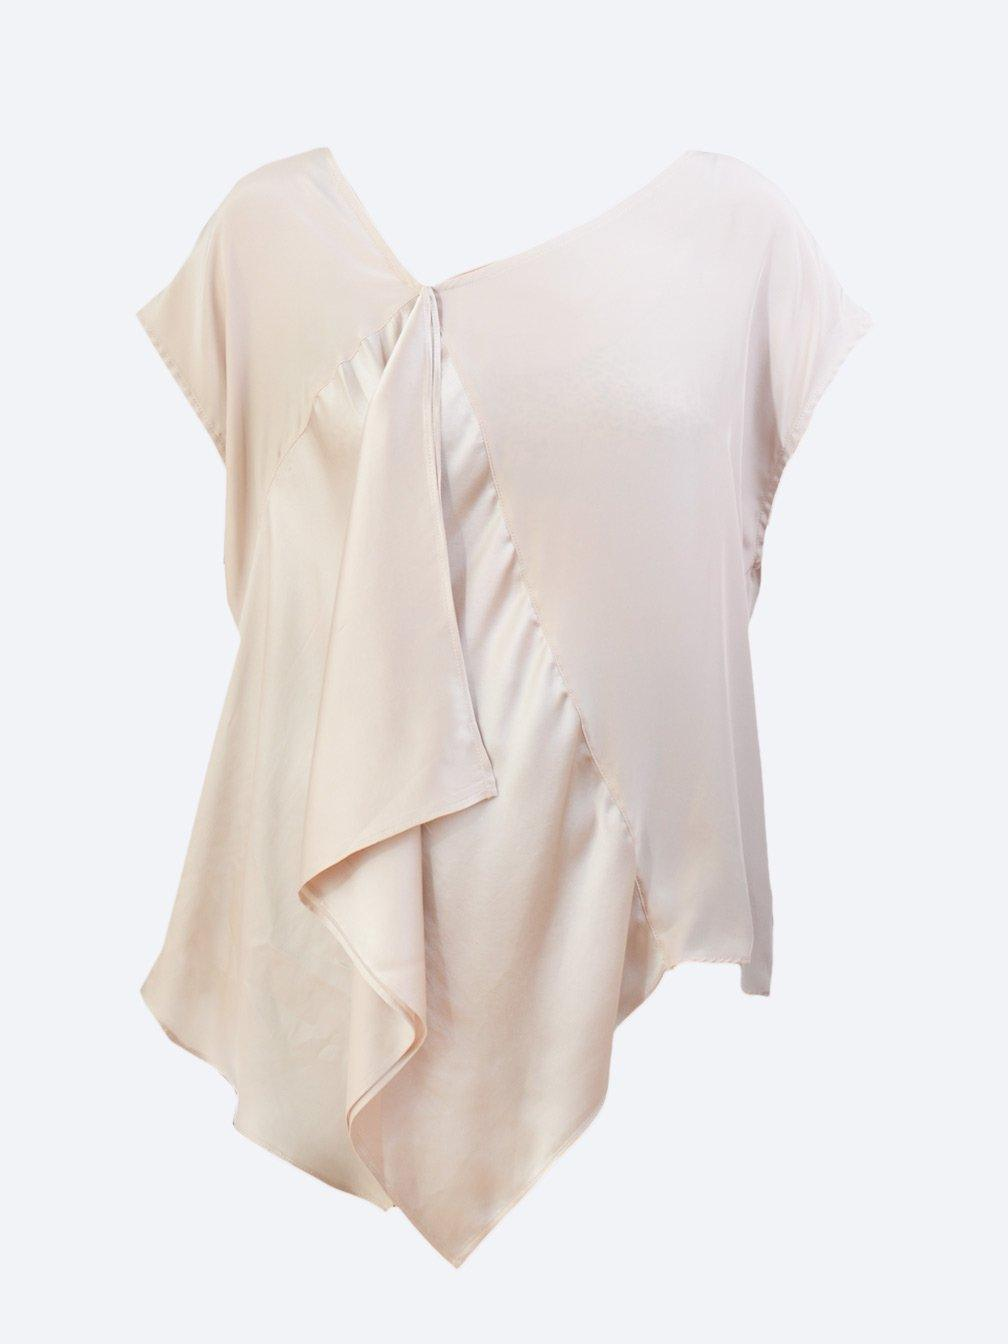 M.A DAINTY 12.01AM SILK TOP-Tops-M.A DAINTY-ENNI